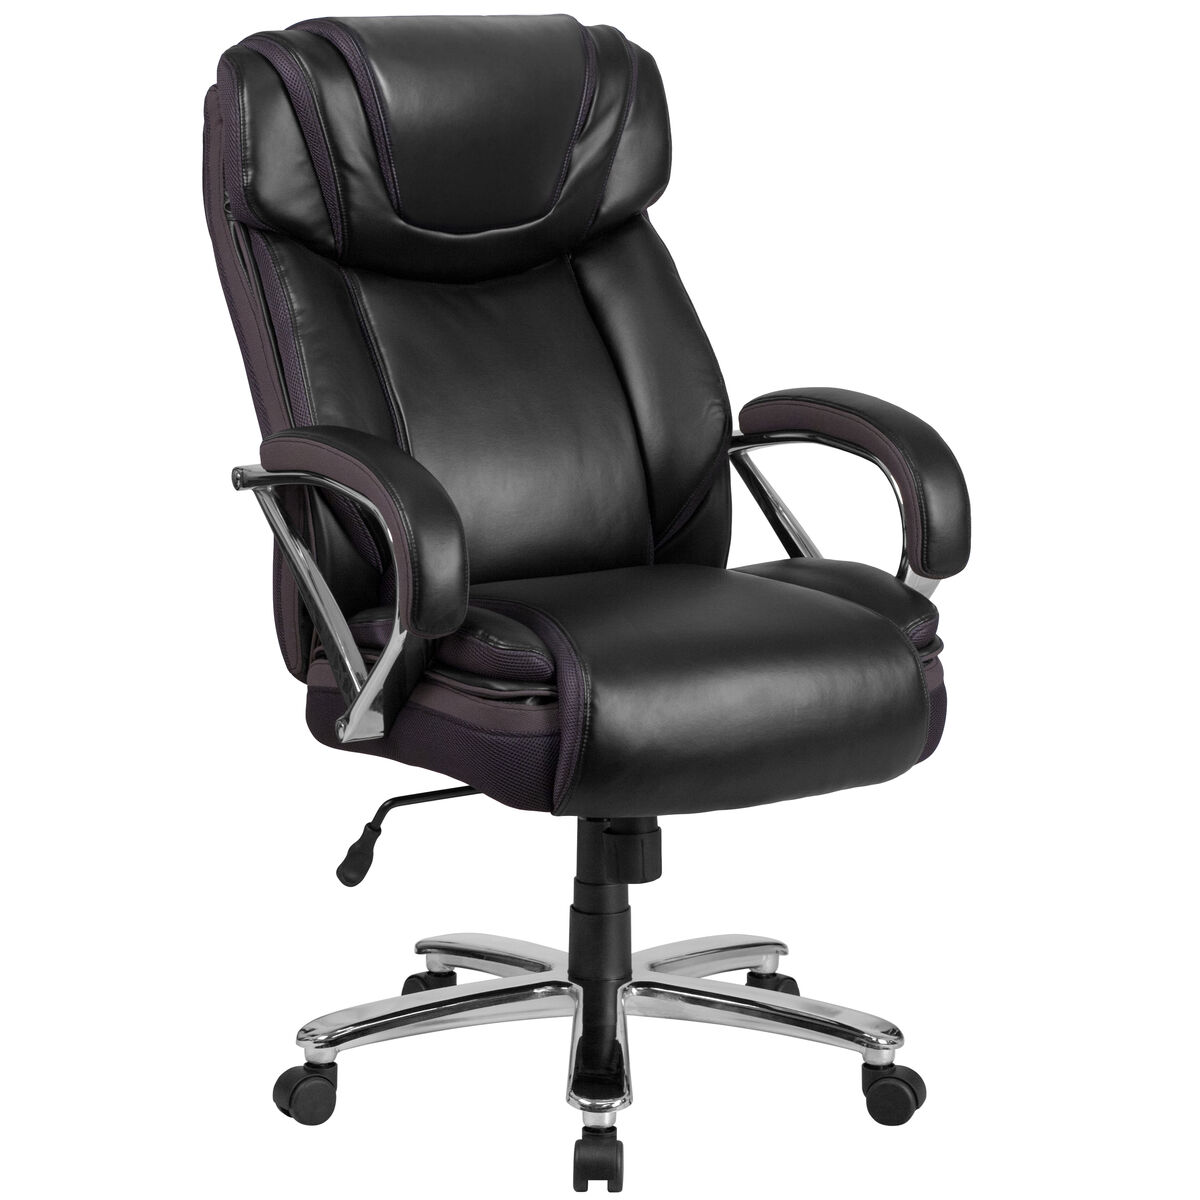 Rated Black Leather Executive Swivel Chair With